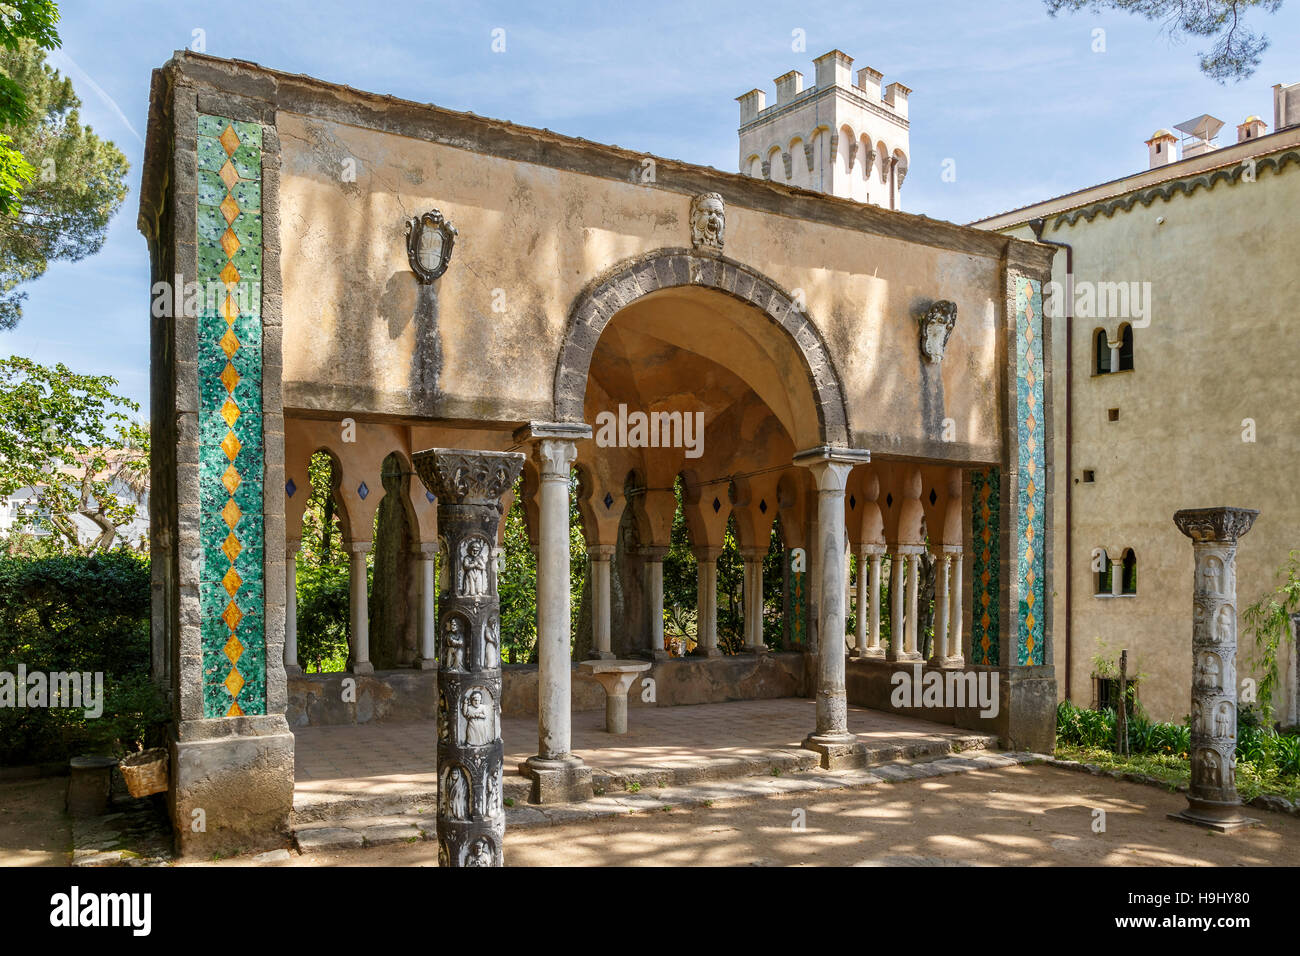 The strong Moorish influence in the architecture of parts of the 11thC Villa Cimbrone, Ravello, Southern Italy. - Stock Image